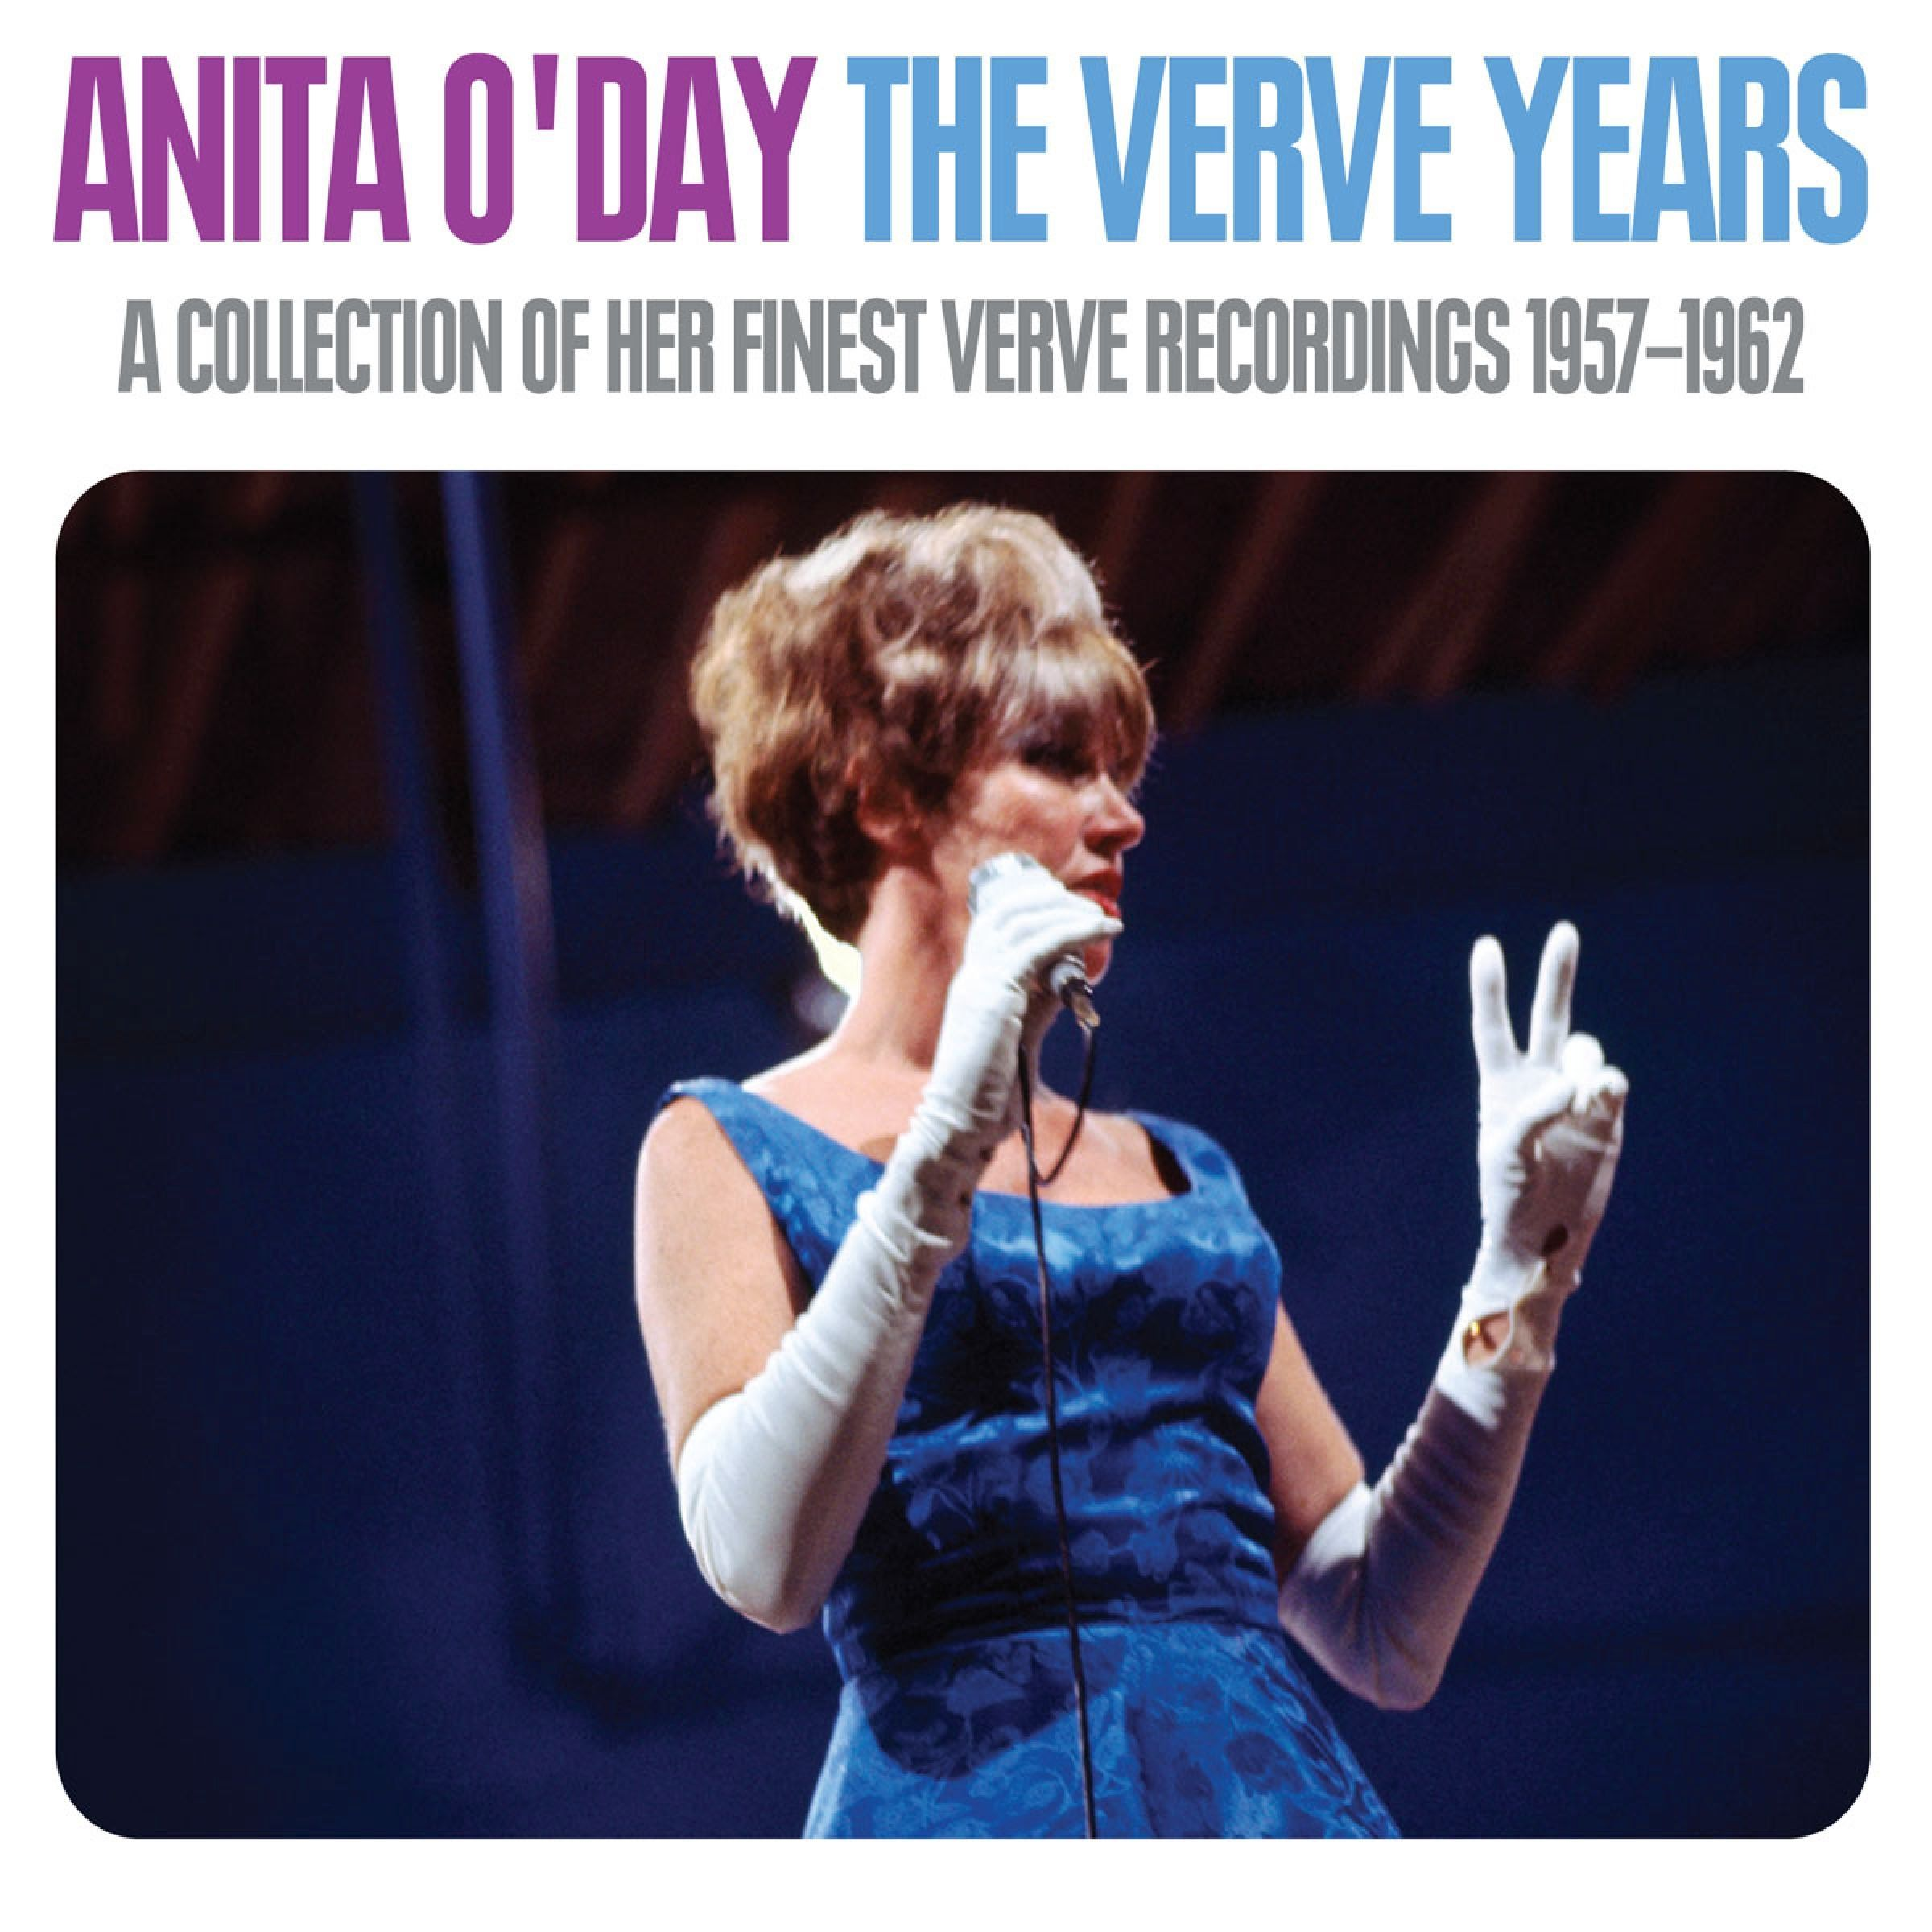 Anita O Day The Verve Years 1957 1962 Not Now Music Full Album